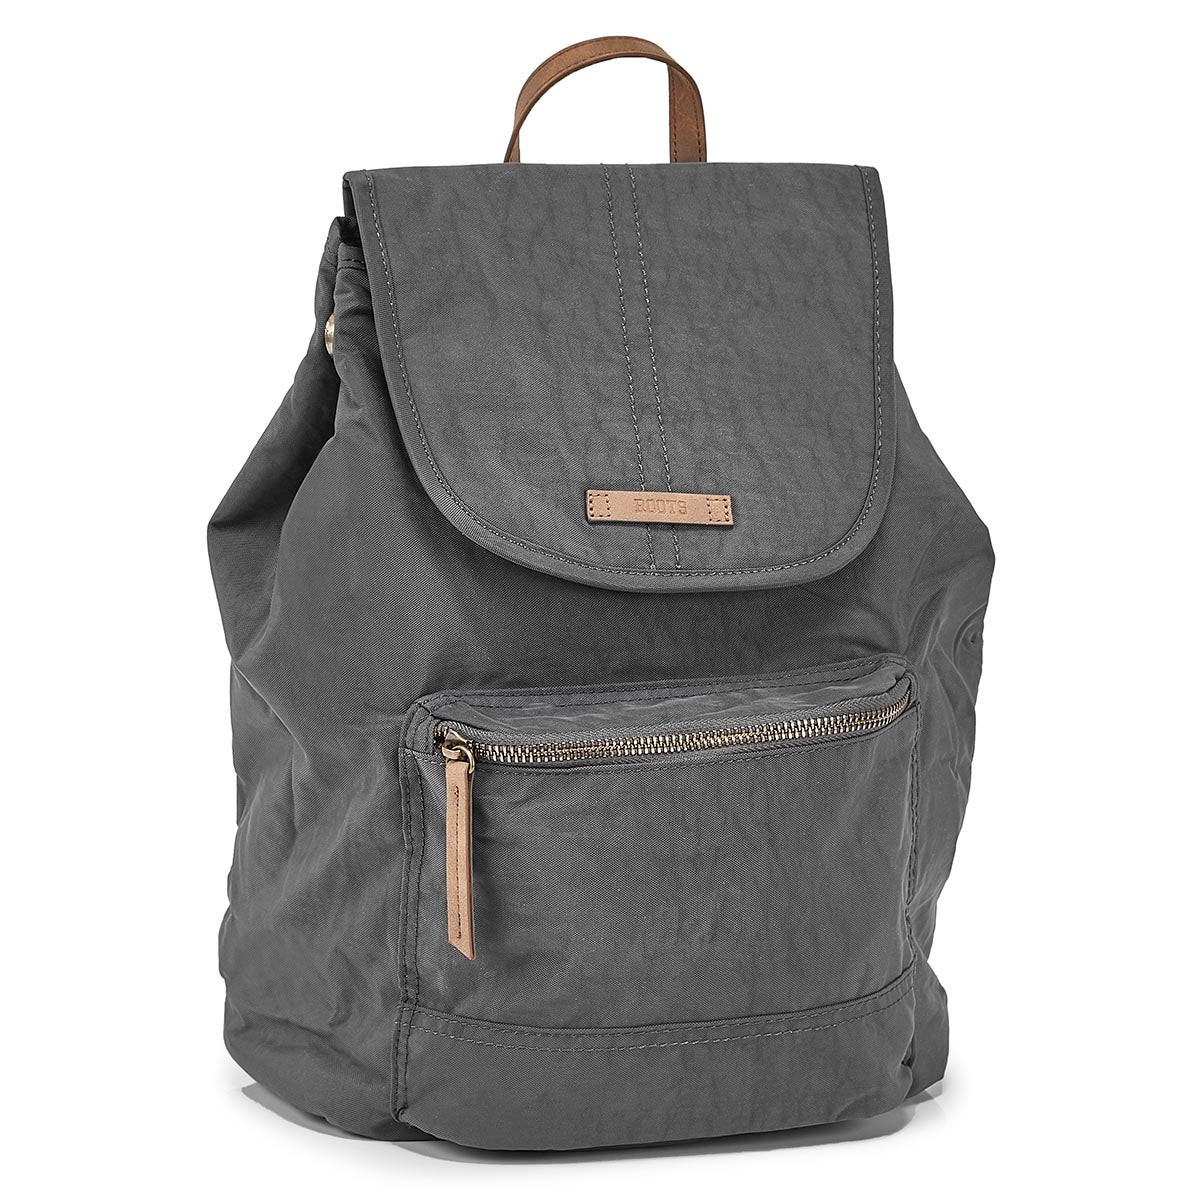 Lds Roots73 charcoal flap backpack